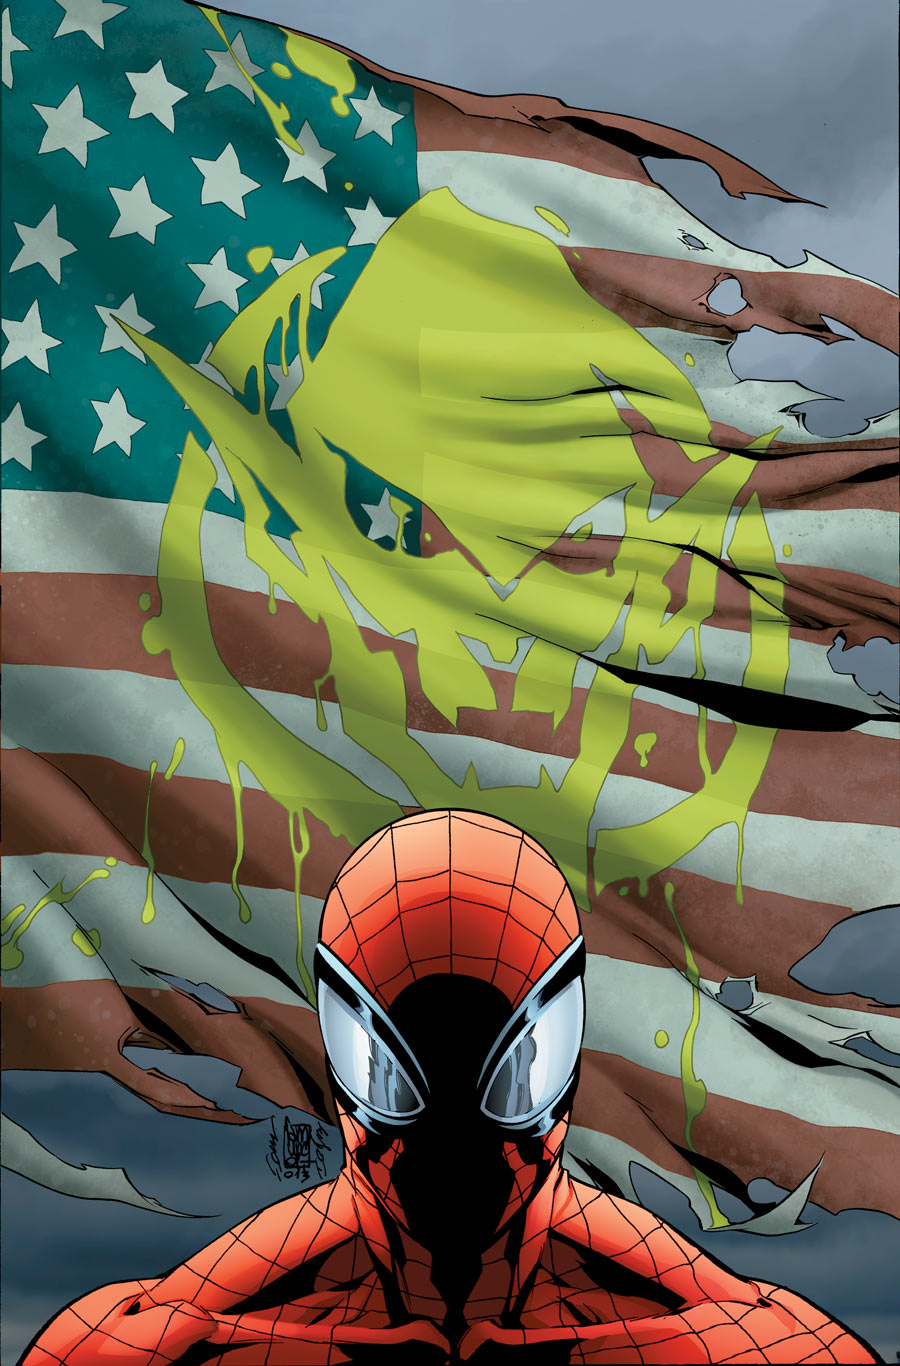 Superior Spider-Man Volume One: Issues #1-31 Review